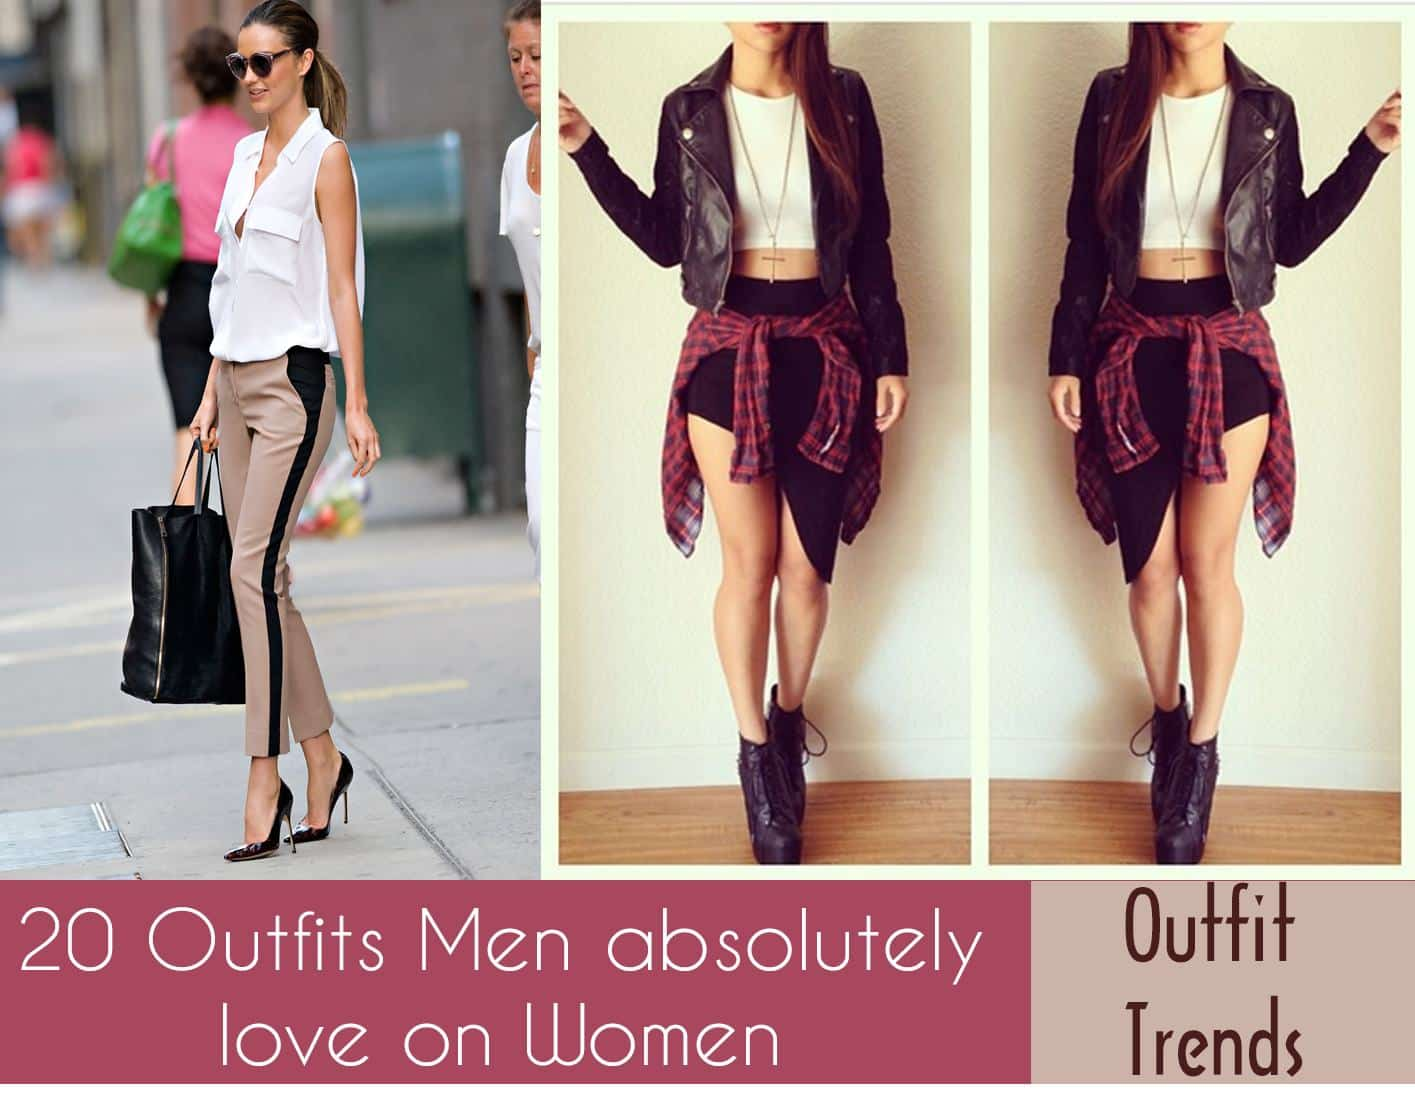 outfits-men-love-on-women Outfits Men love on Women-These 20 Outfits Your Man Wants you to Wear